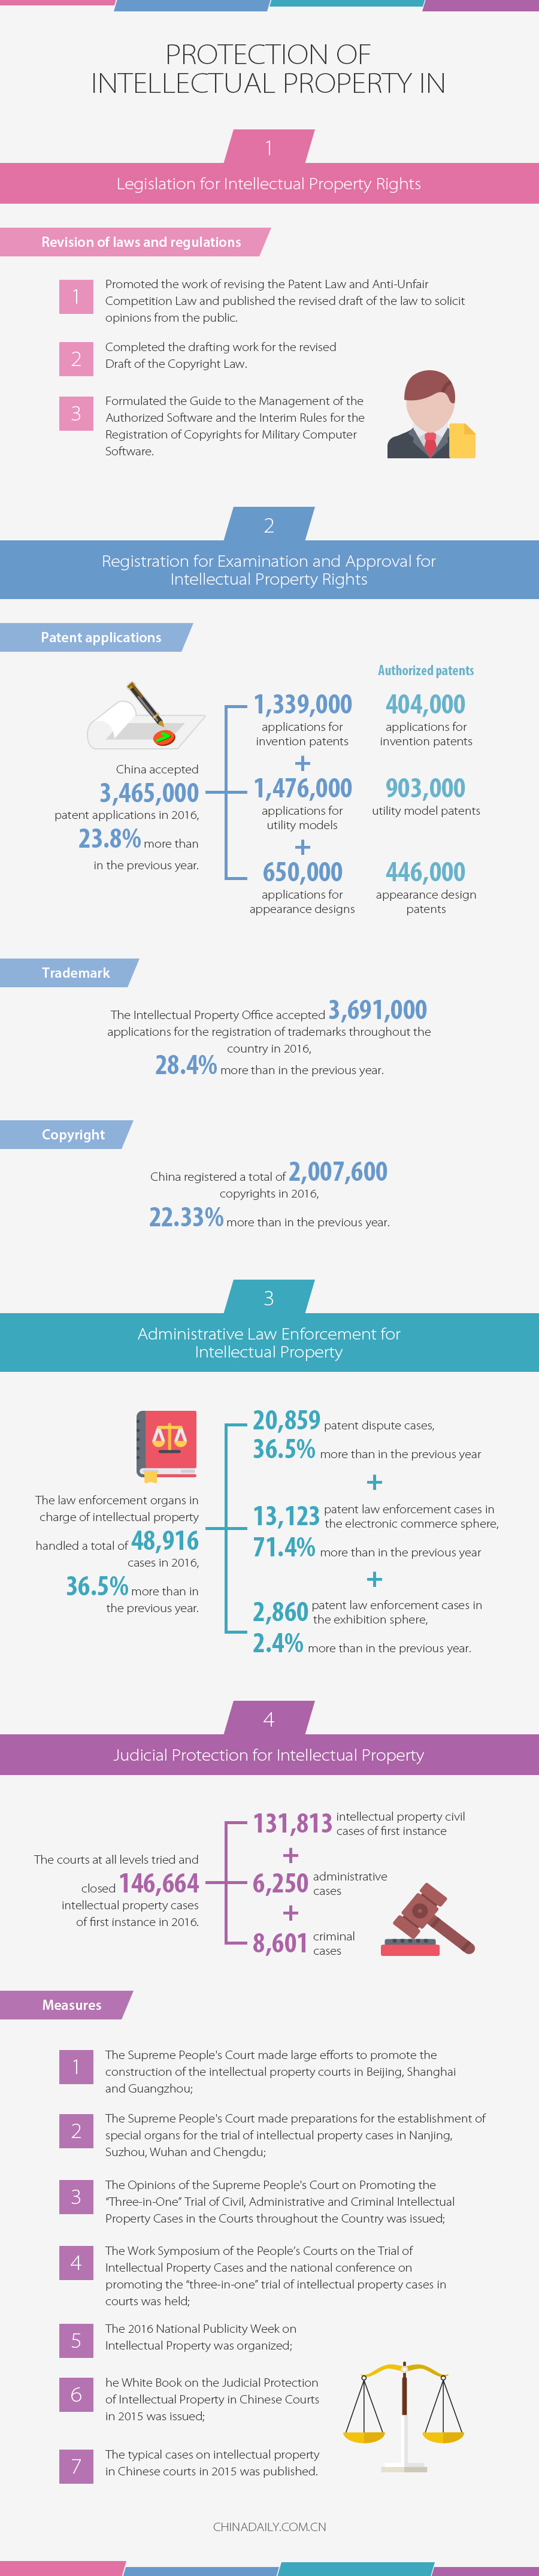 Protection of Intellectual Property in China.jpg